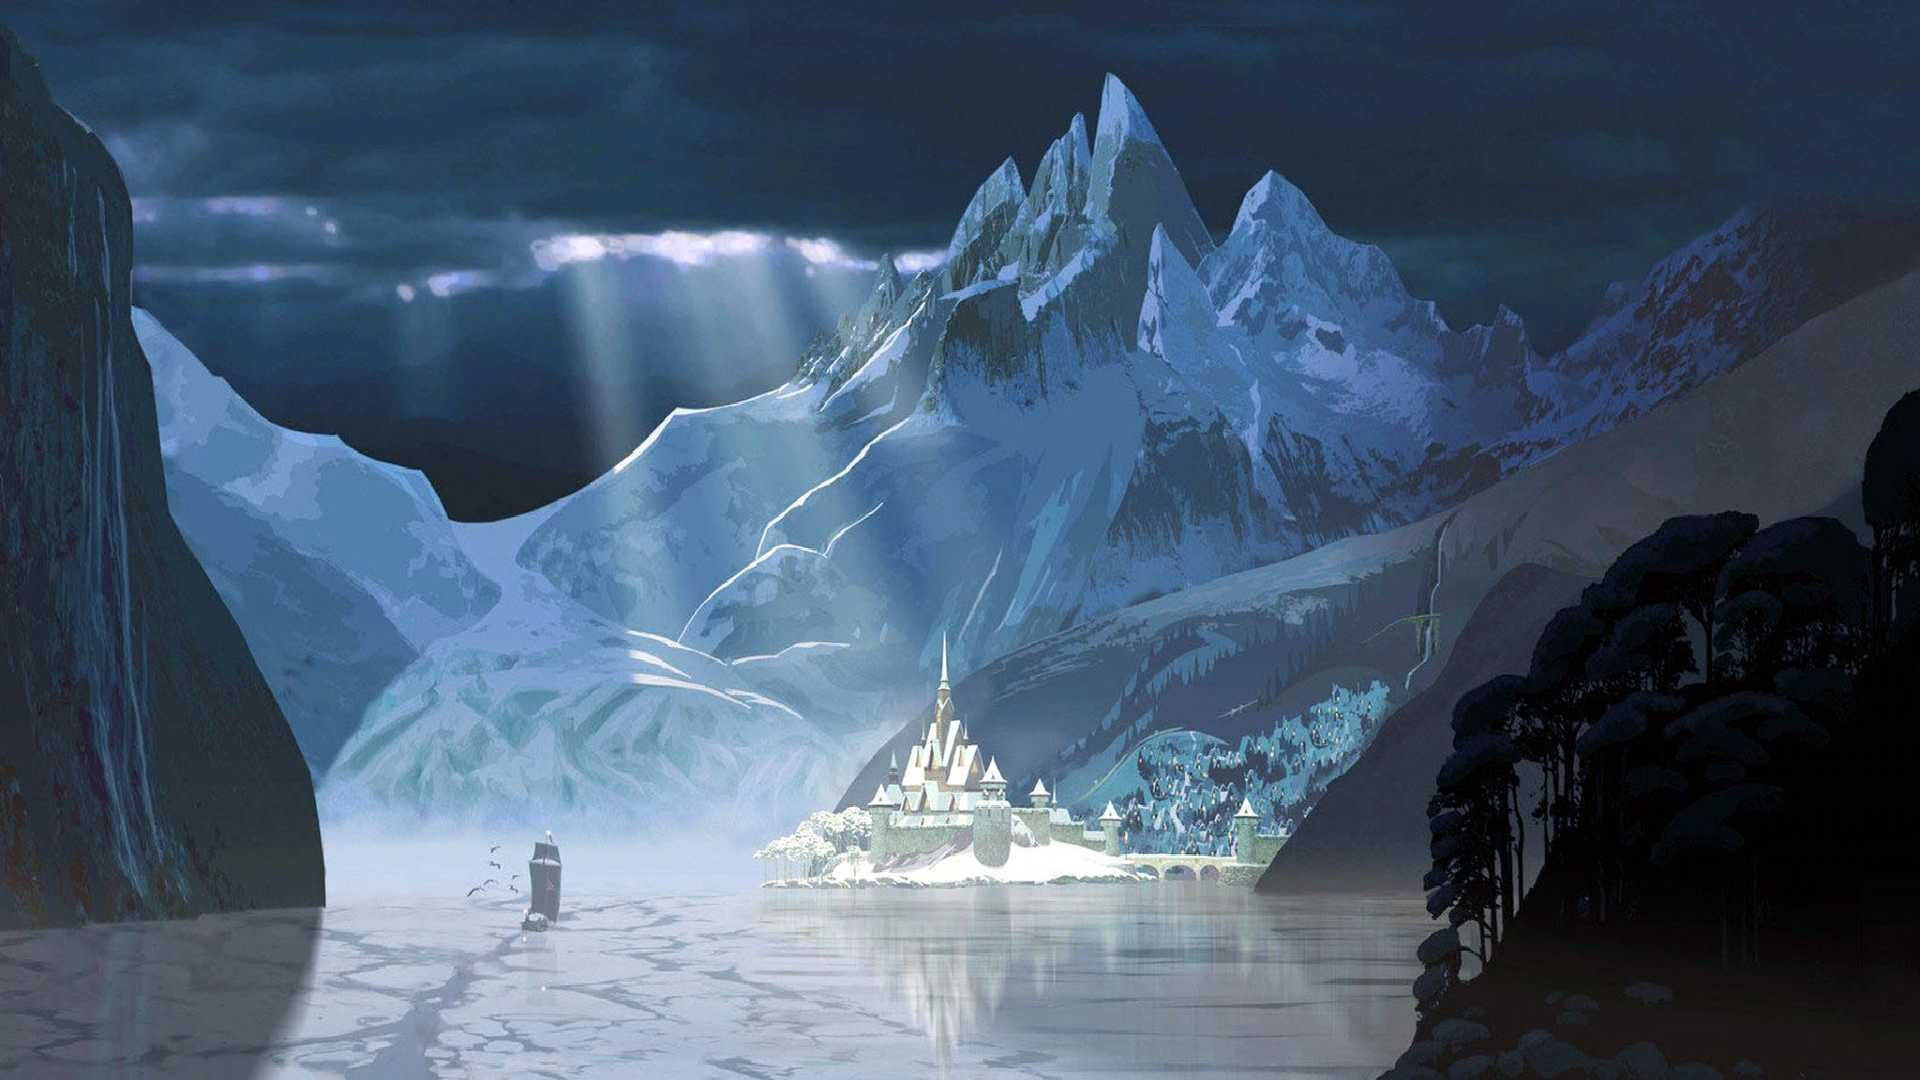 Frozen Disney Frozen Wallpaper For Download 1920x1080